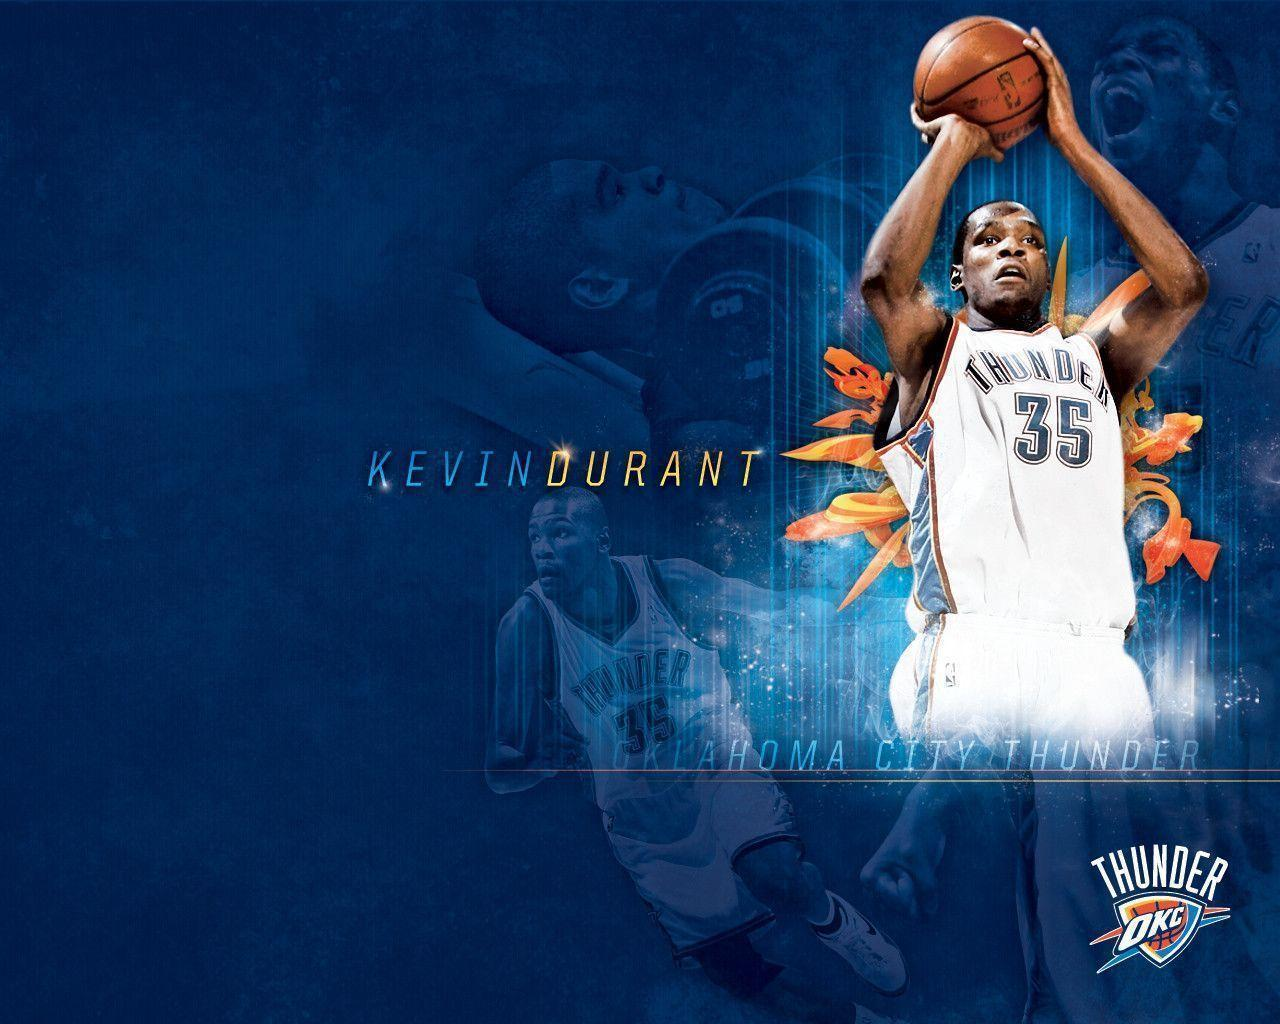 Kevin Durant Backgrounds - Wallpaper Cave